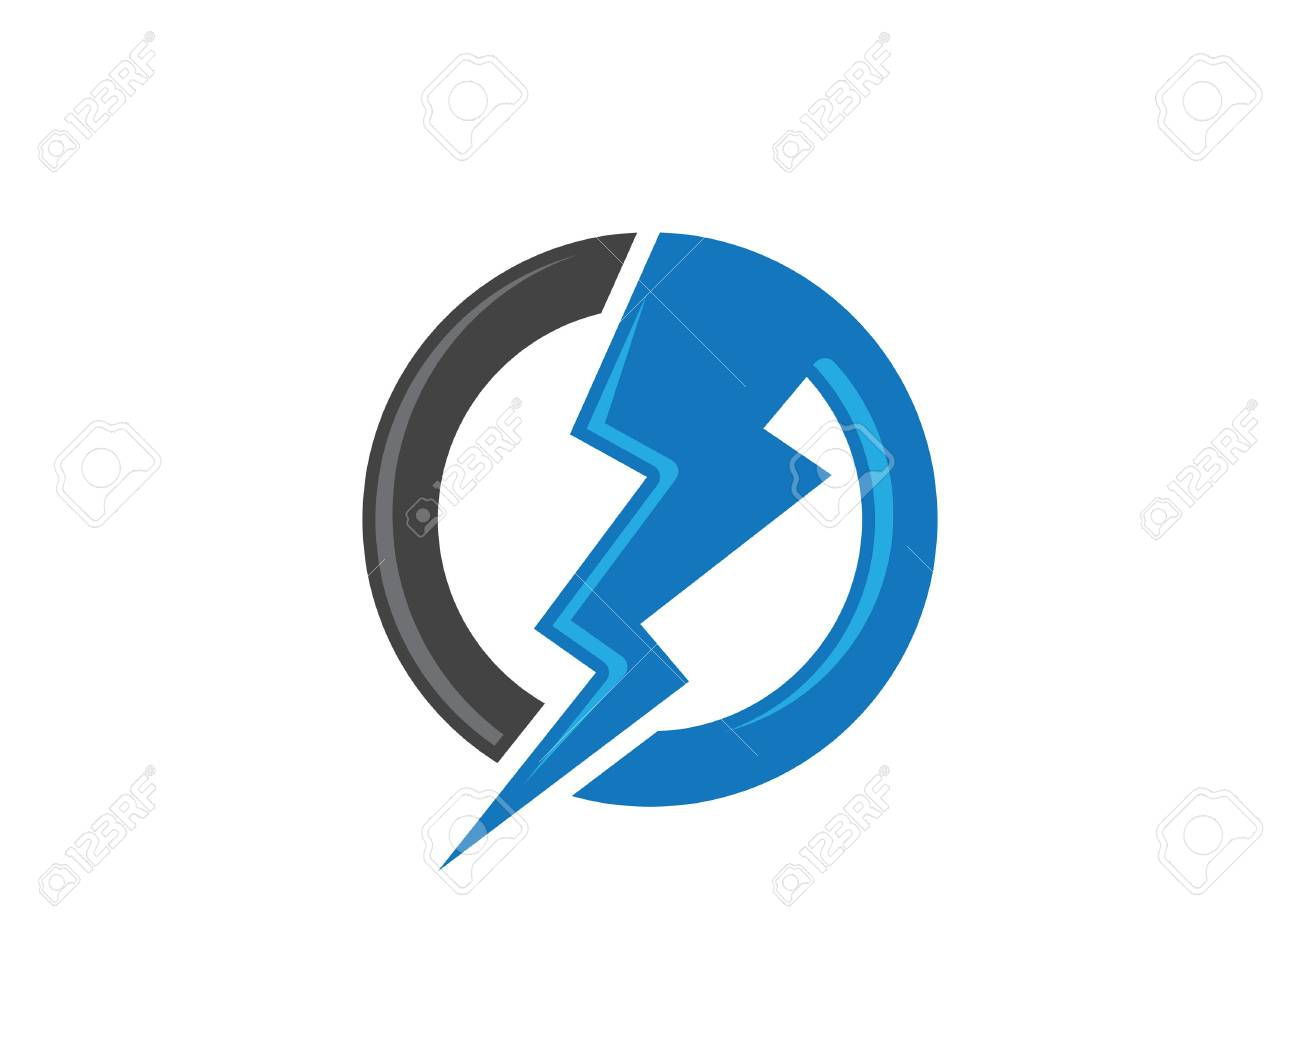 Lightning Logo Template Vector Icon Illustration Design Royalty Free ... for Lightning Logo In Circle  166kxo